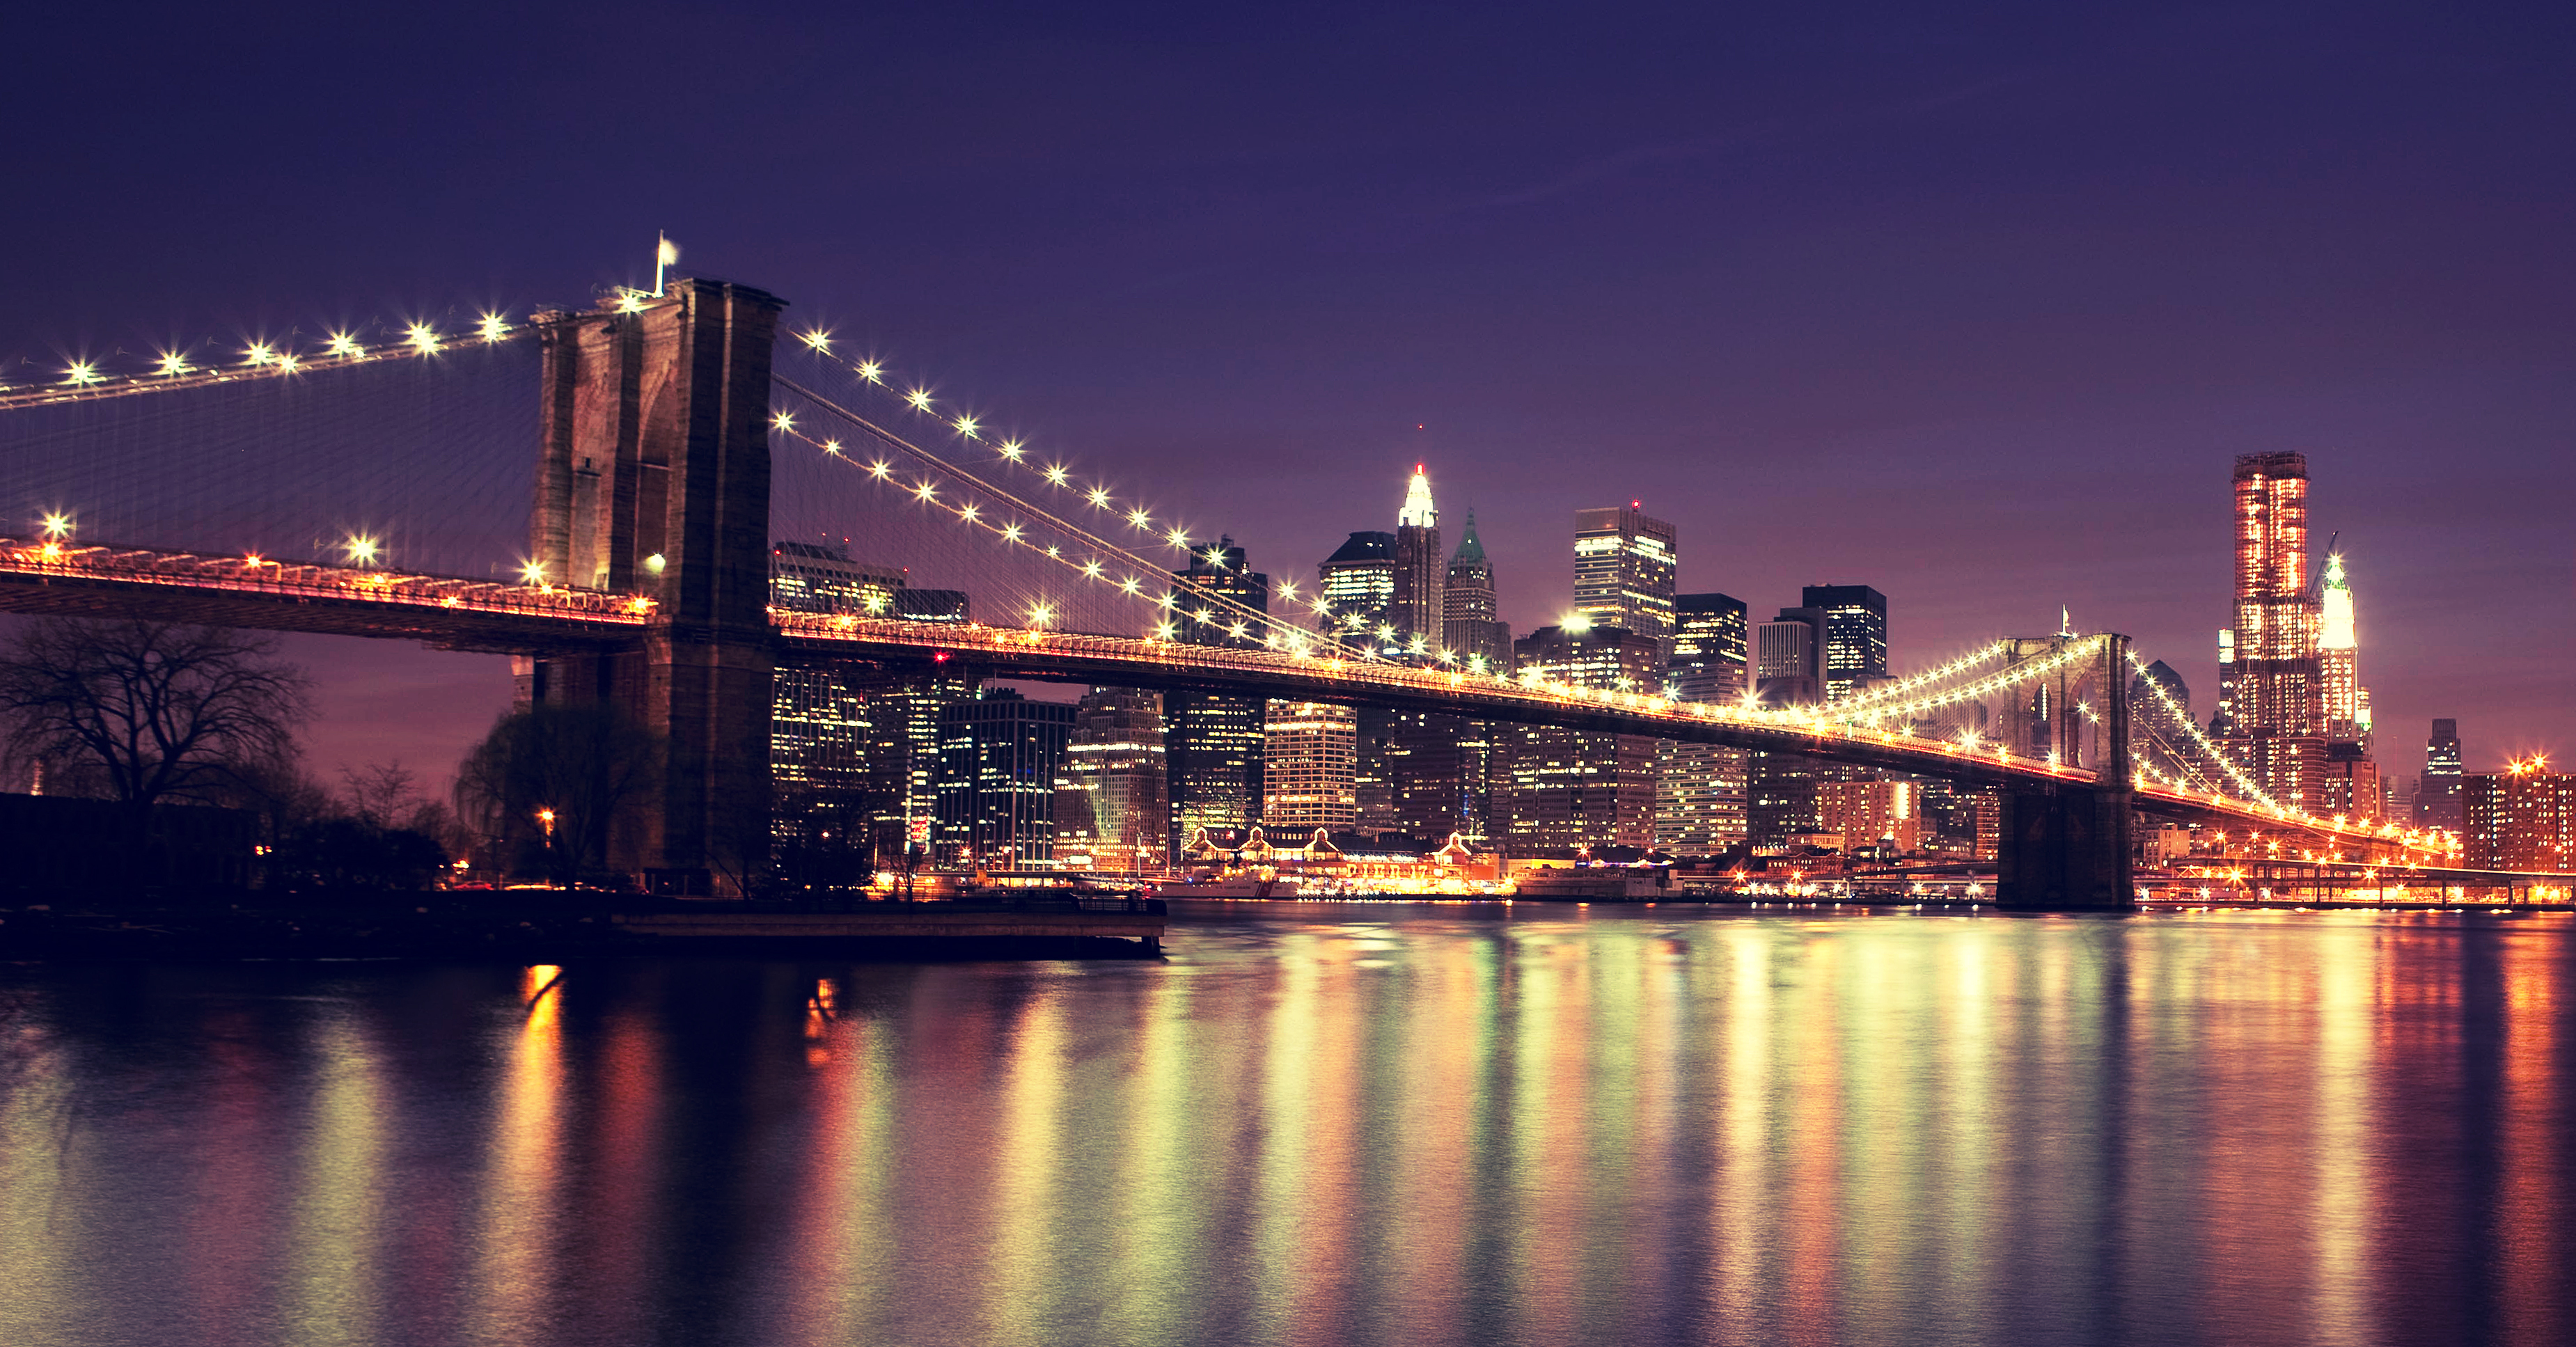 brooklyn bridge wallpapers images photos pictures backgrounds. Black Bedroom Furniture Sets. Home Design Ideas